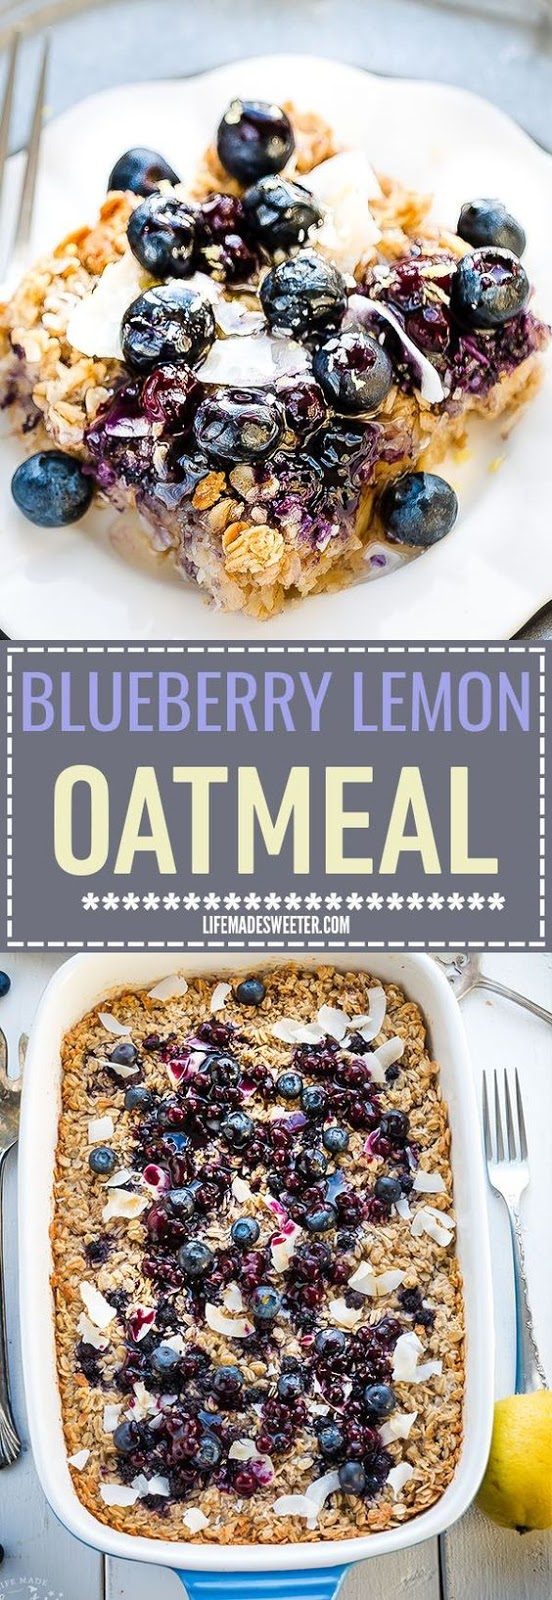 BLUEBERRY LEMON COCONUT BAKED OATMEAL